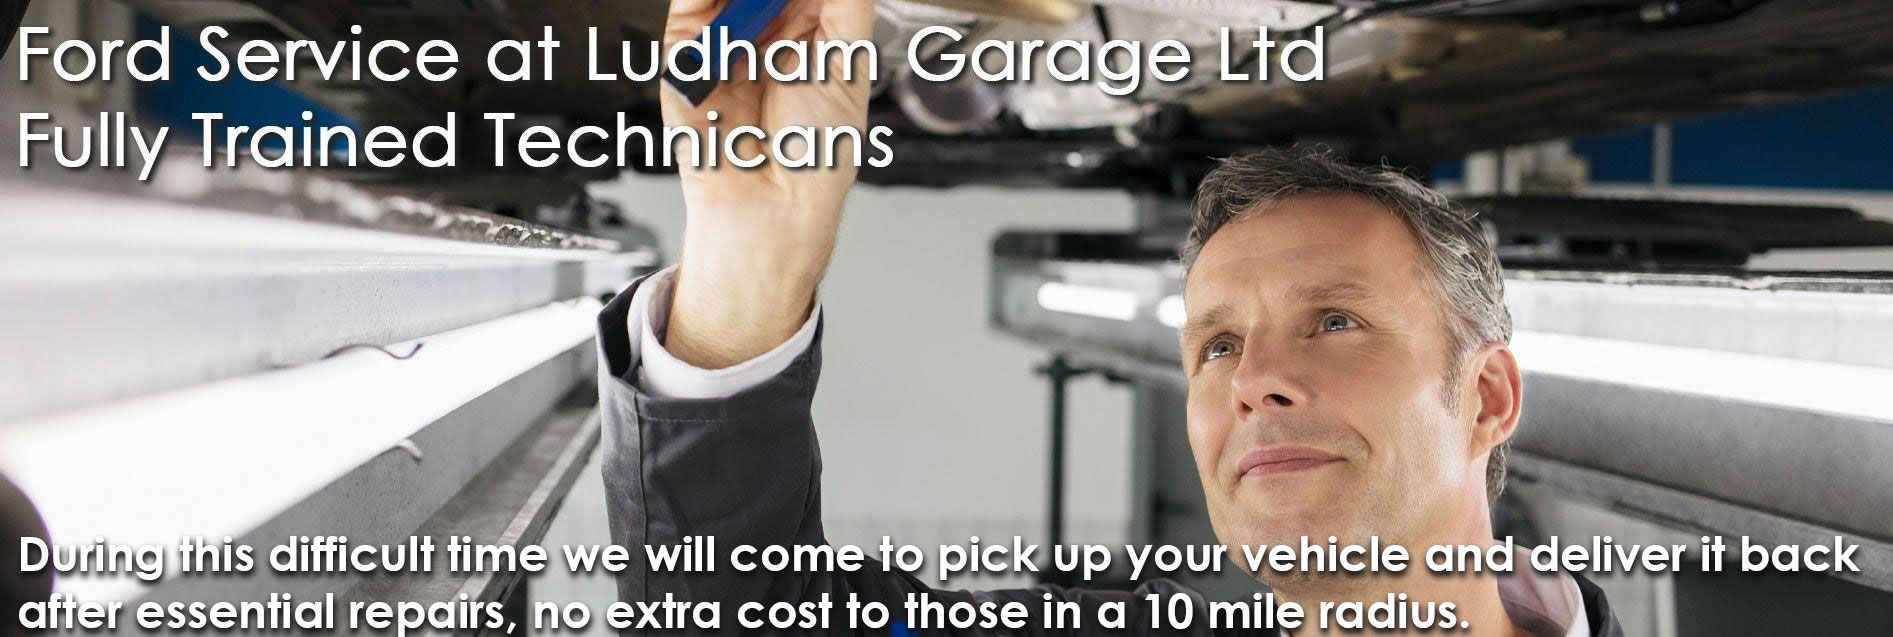 Servicing at Ludham Garage